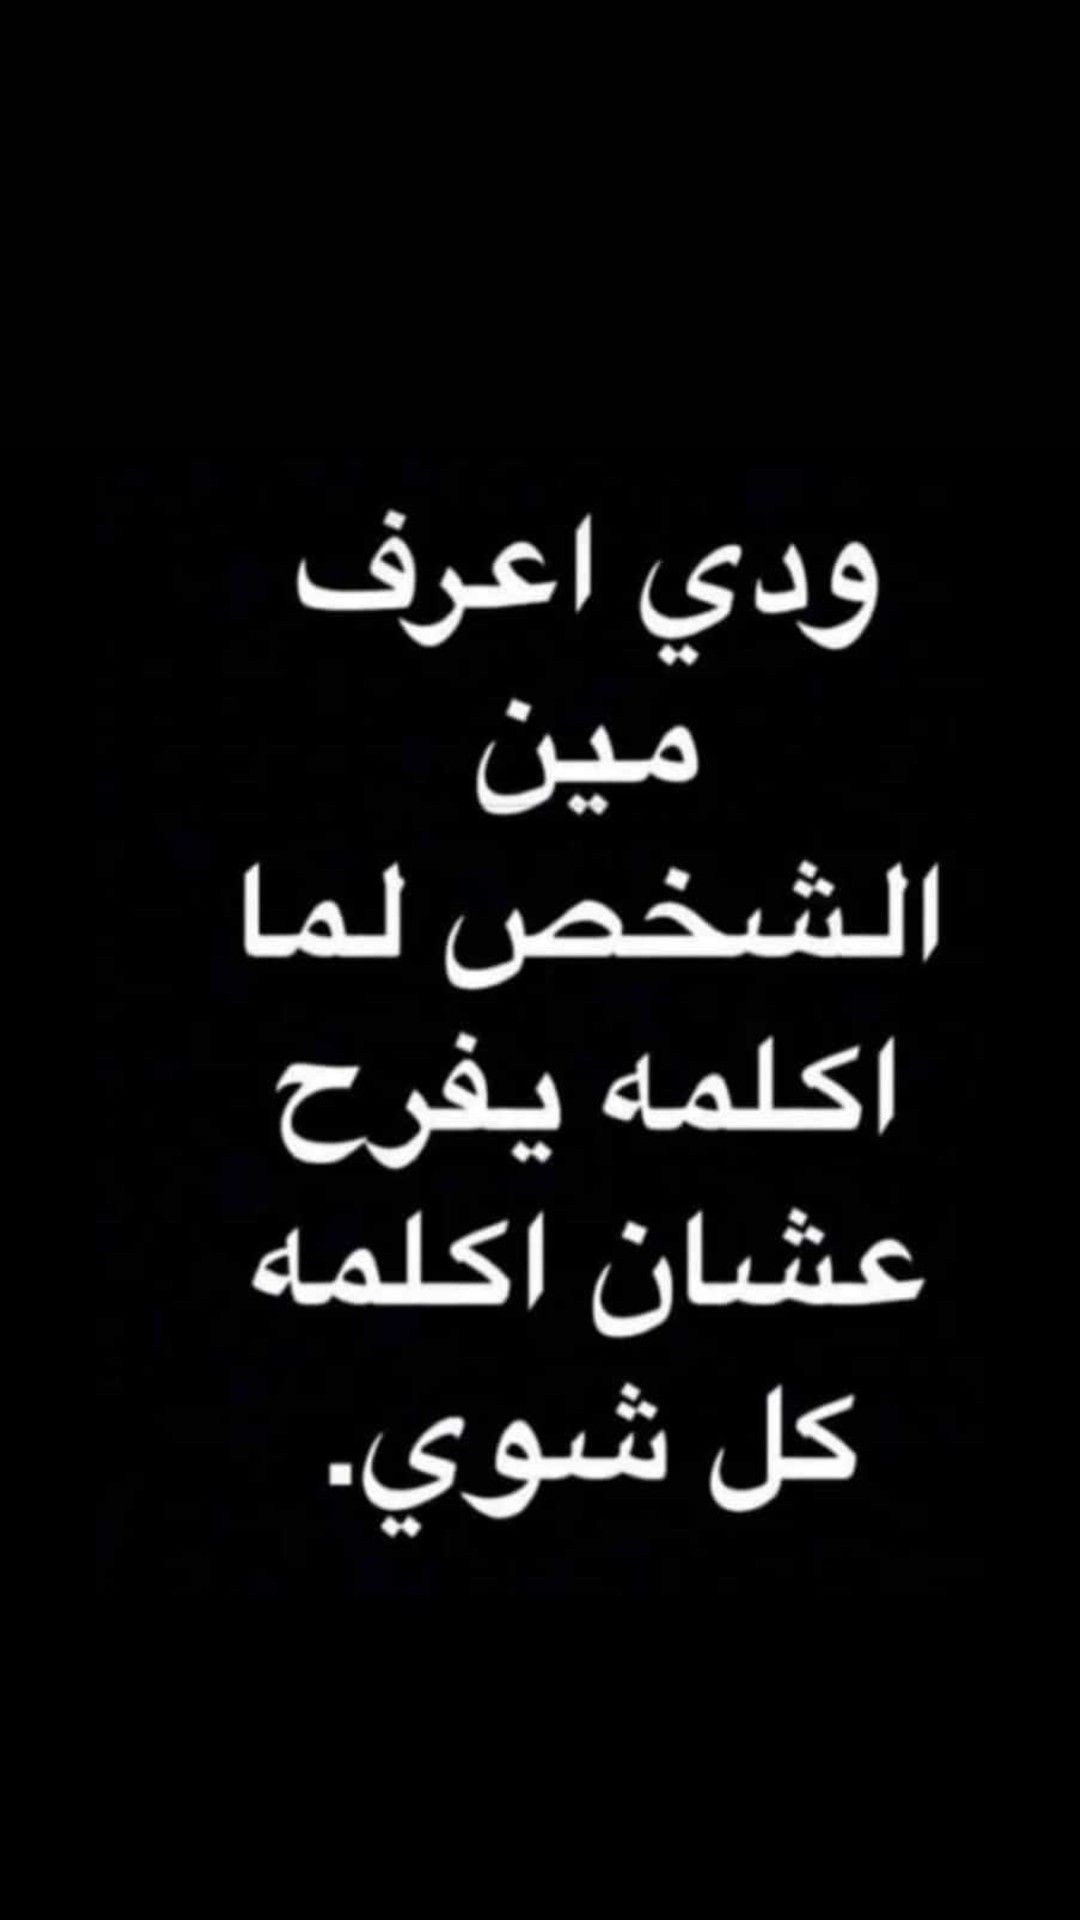 Pin By Jojo On استهبال Arabic Quotes Love Quotes Words